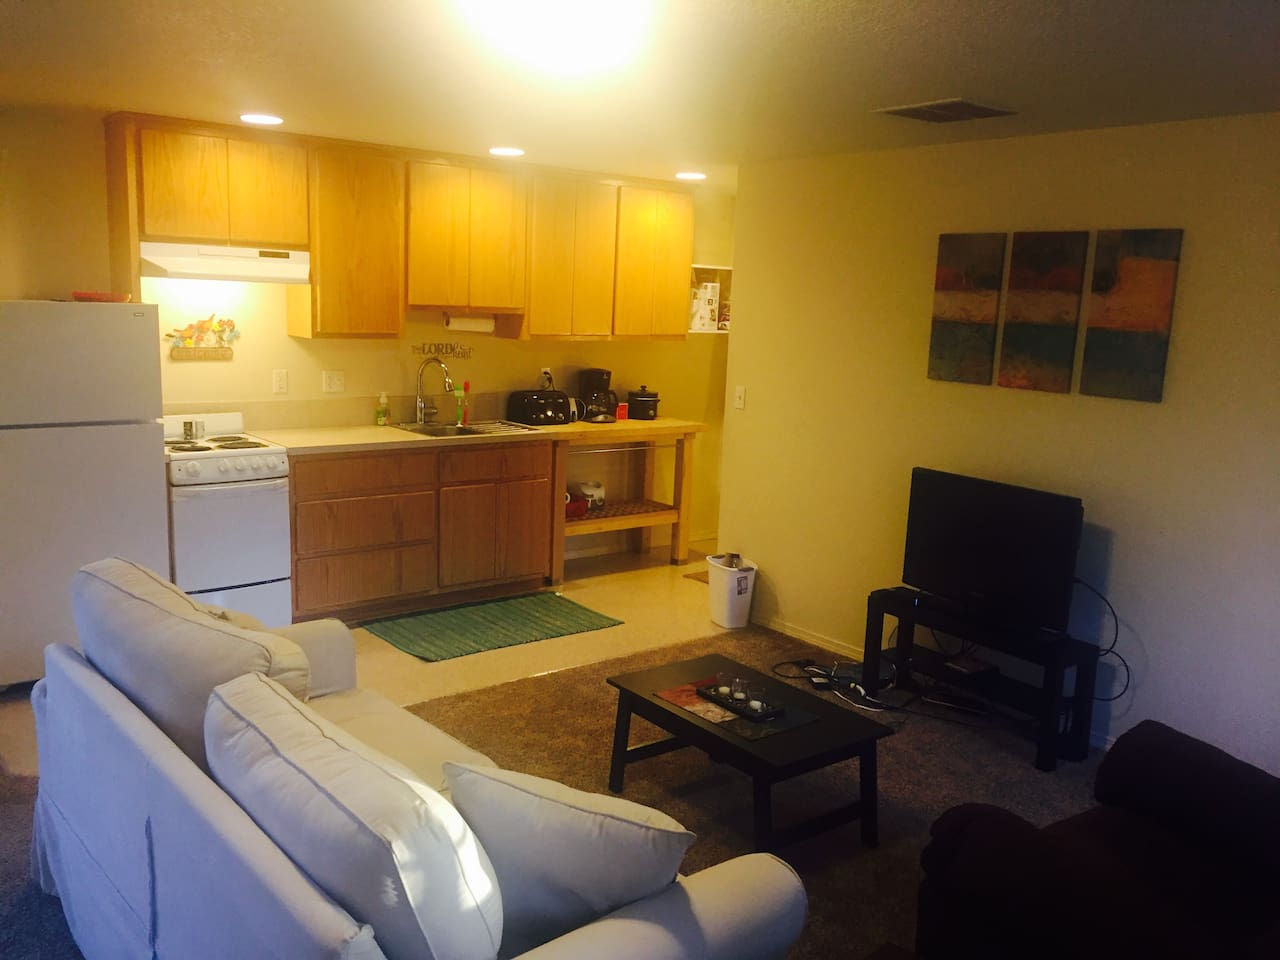 Sweet studio in the Couv - Apartments for Rent in Vancouver ...